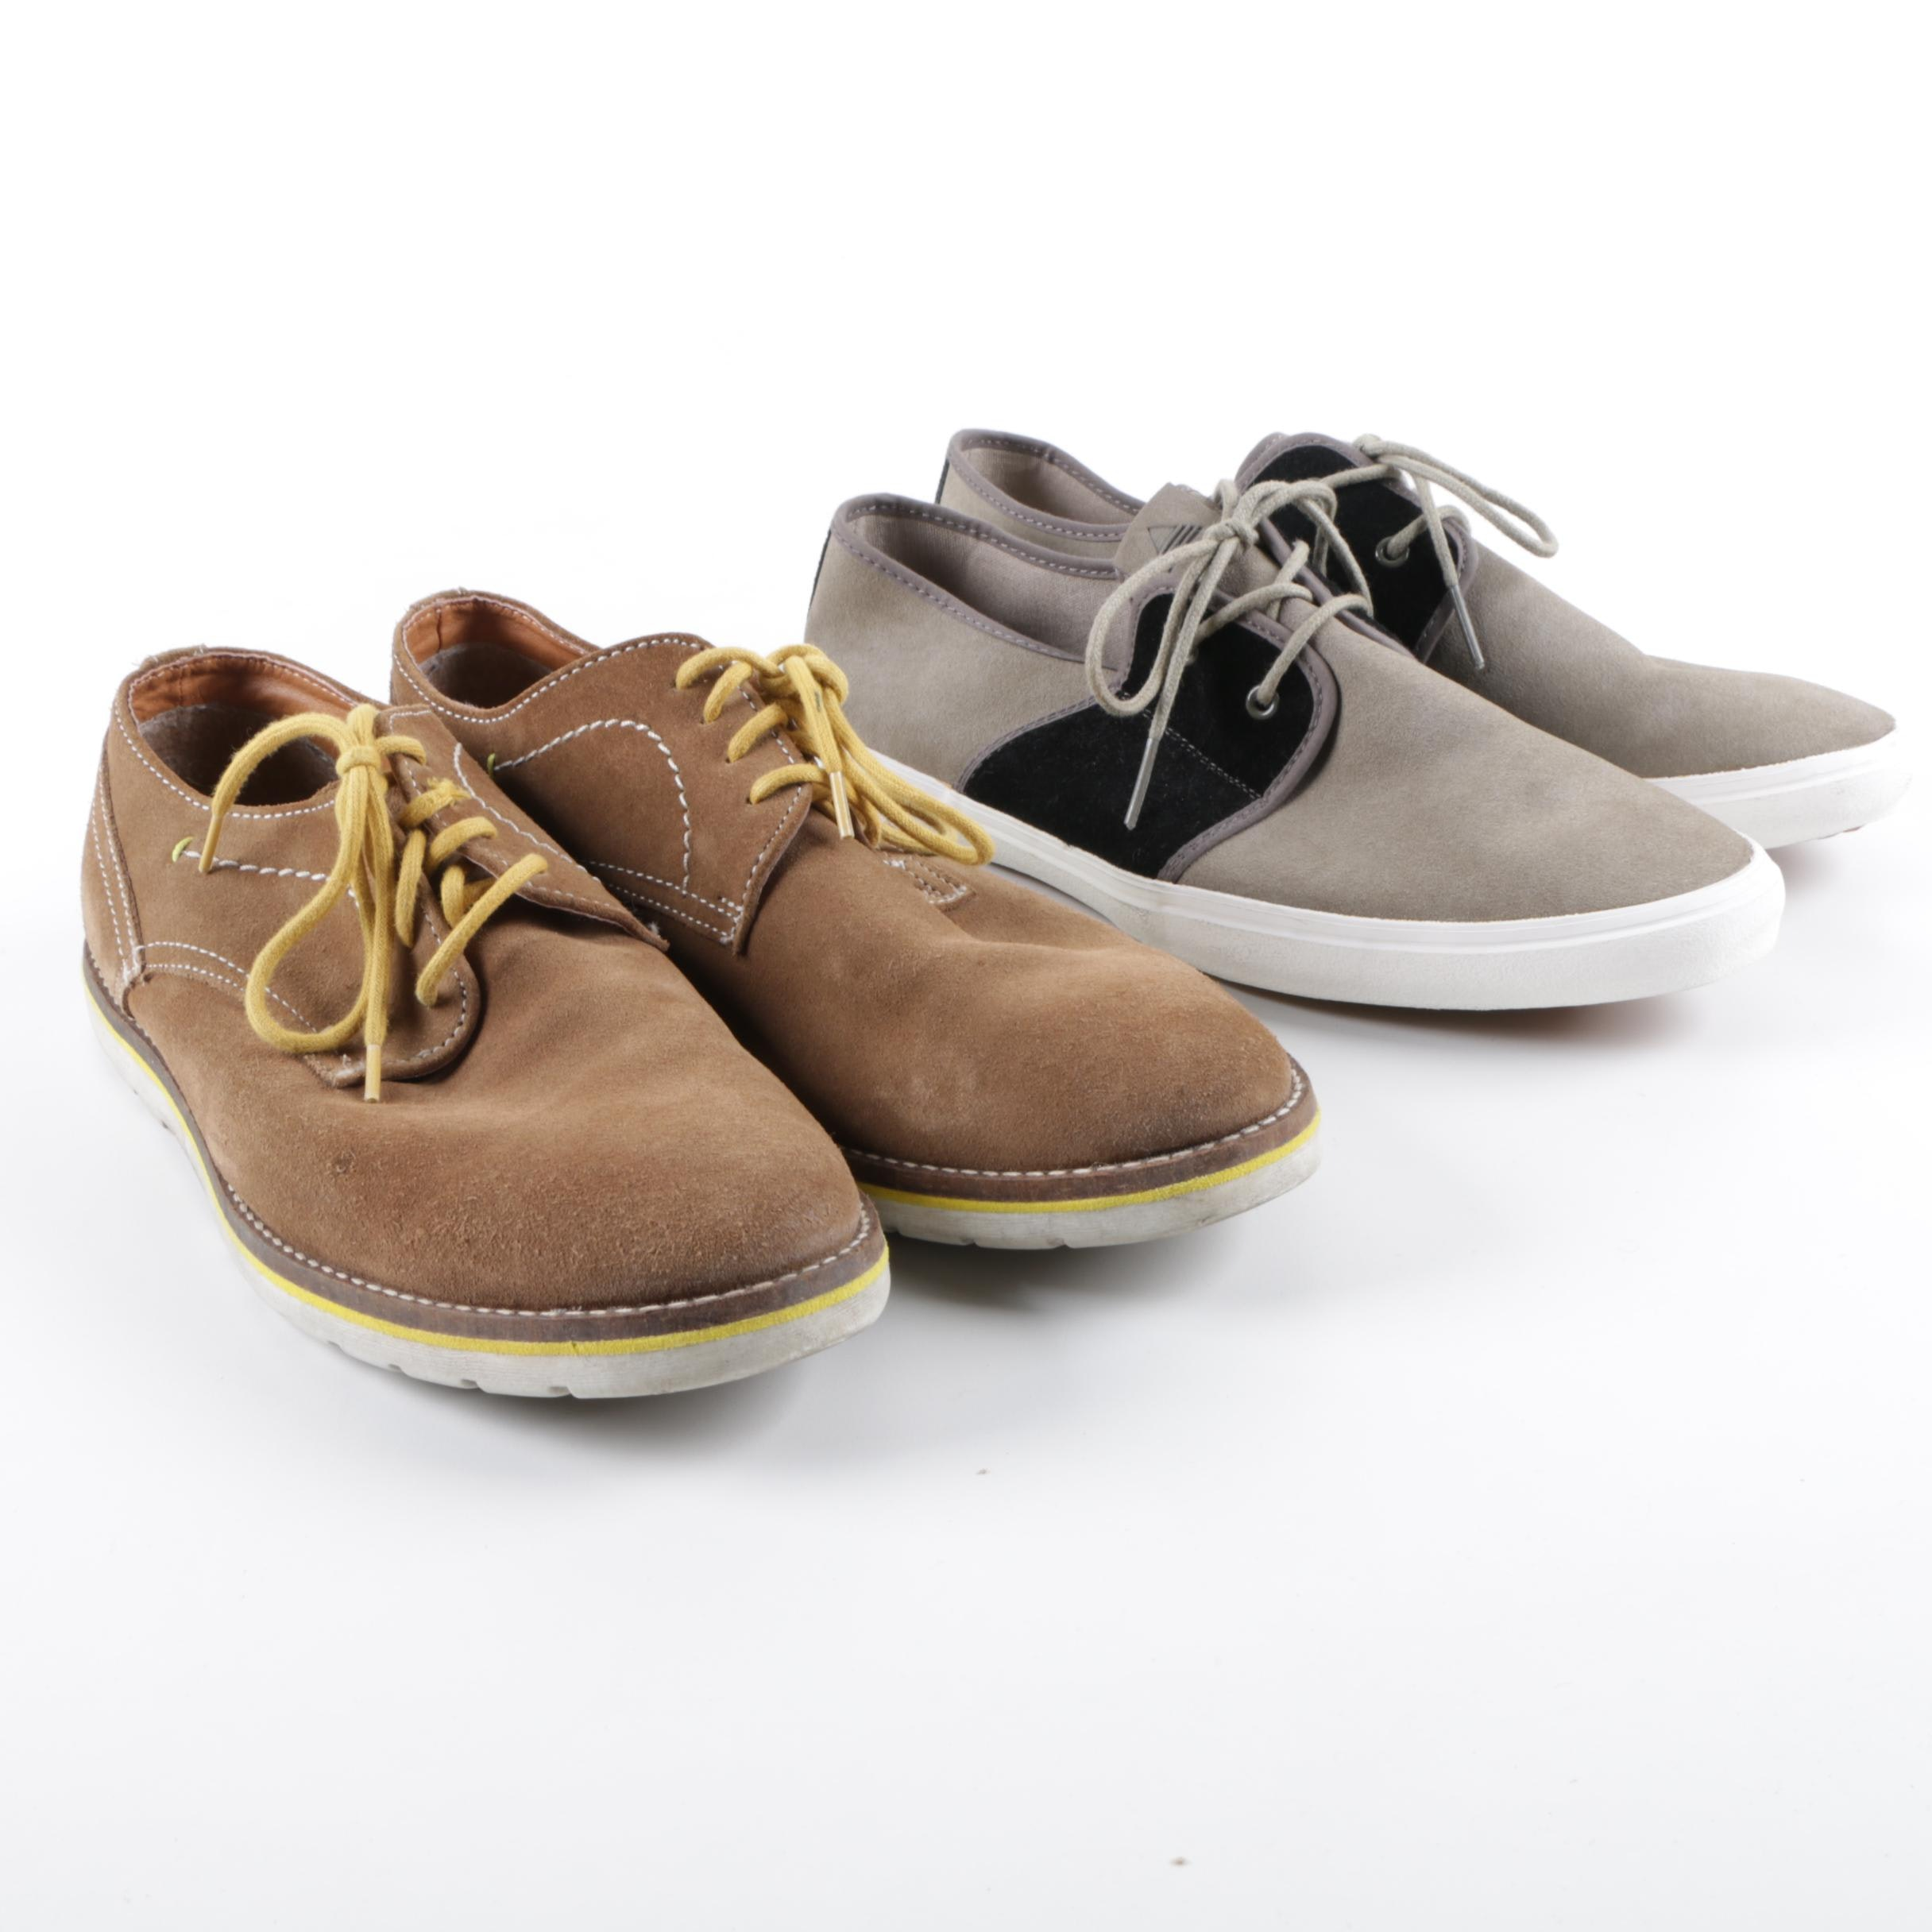 Men's Ben Sherman Suede Oxfords and Aldo Suede Sneakers